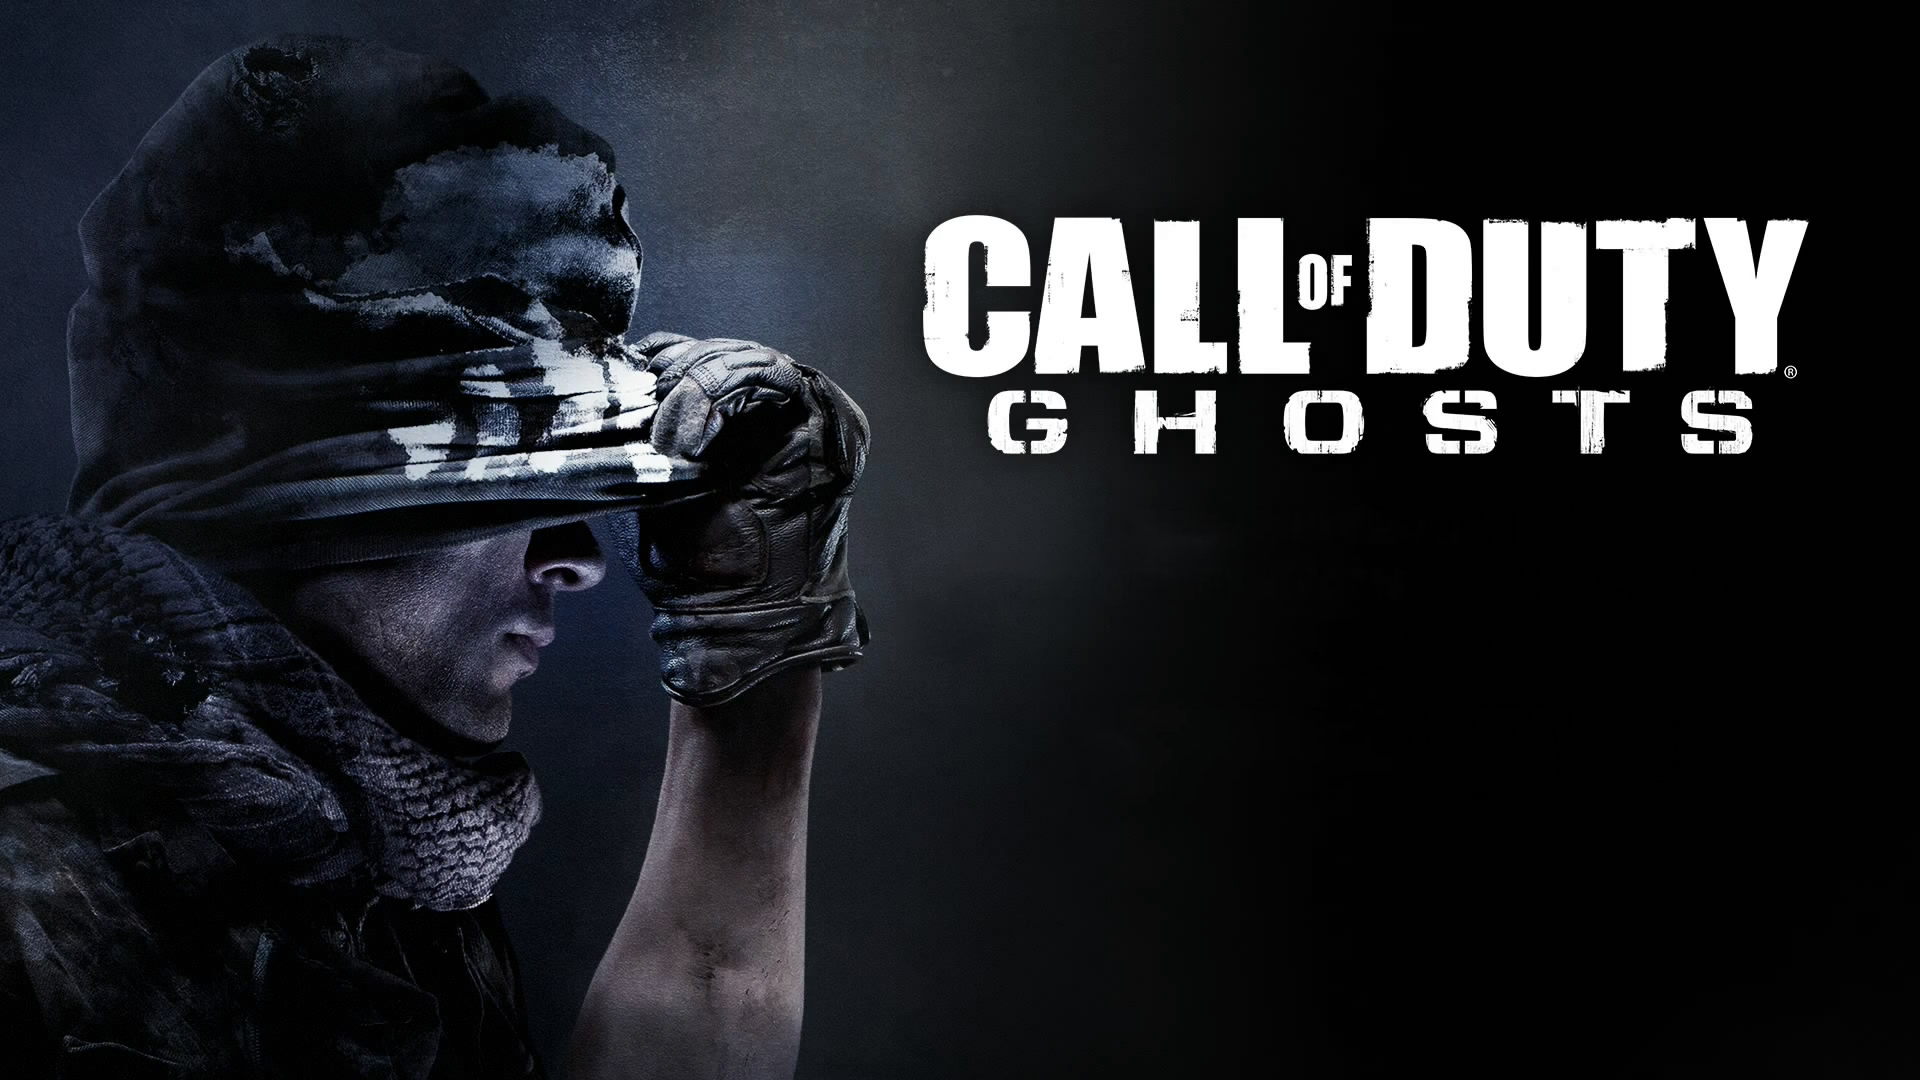 call_of_duty_ghosts-hd.jpg